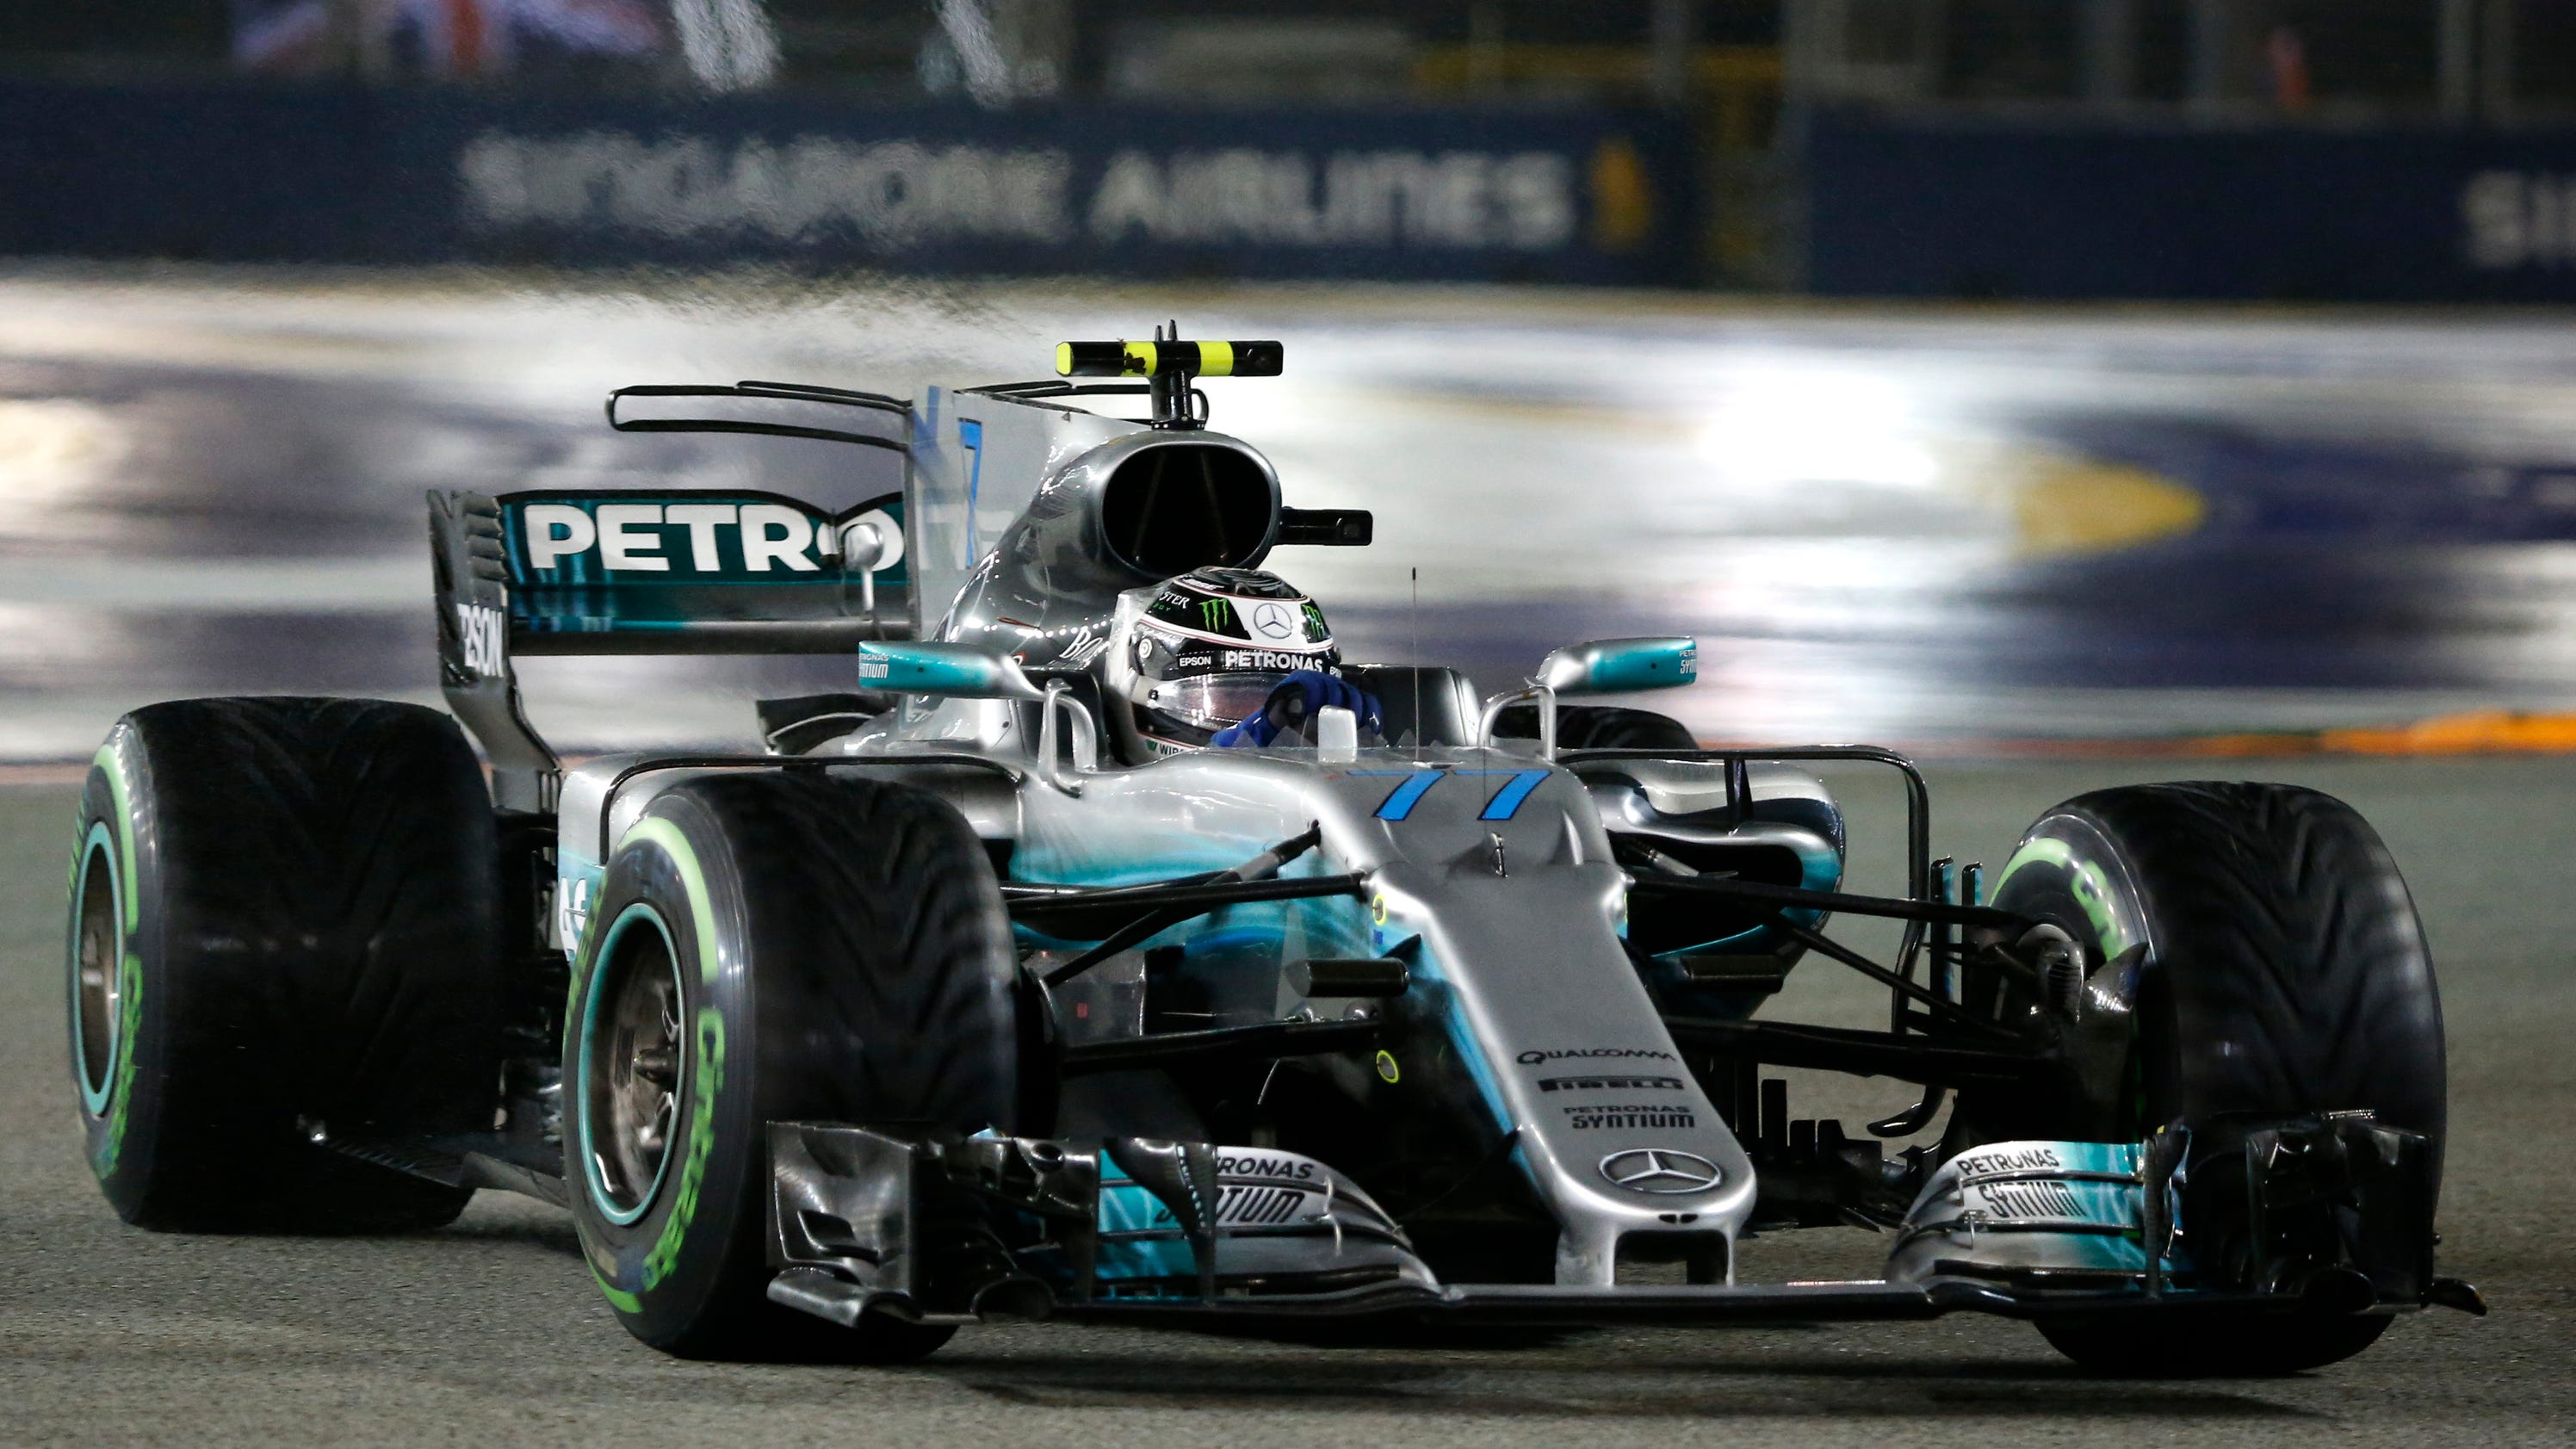 Hamilton wins Singapore GP as title rival Vettel crashes